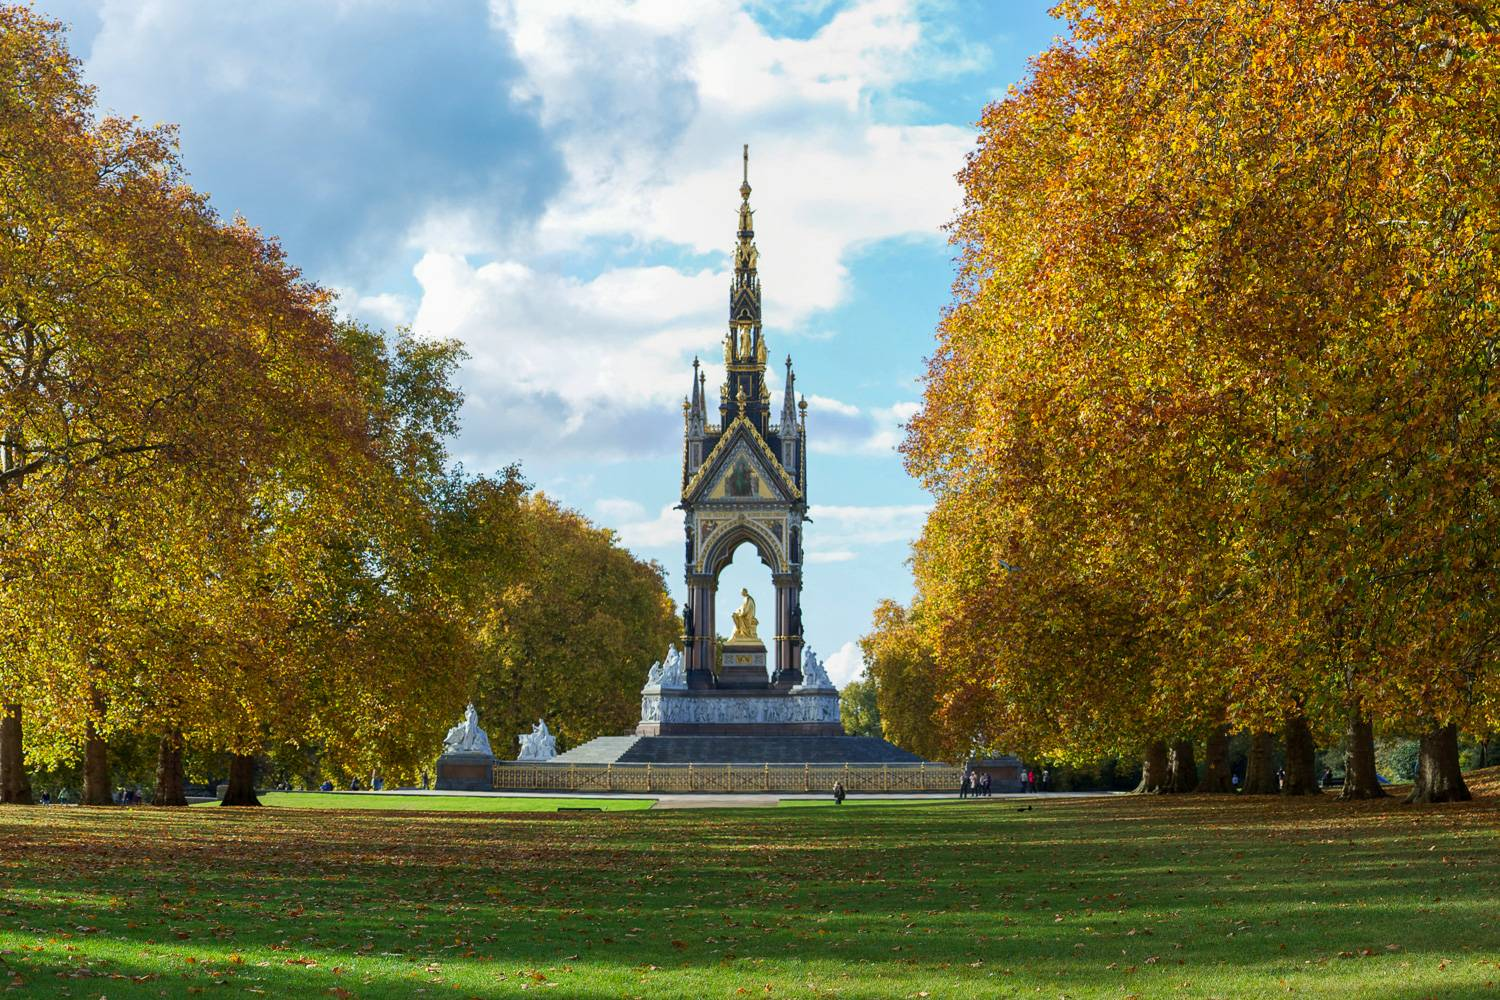 An image of Albert Memorial, a historic monument in Hyde Park.